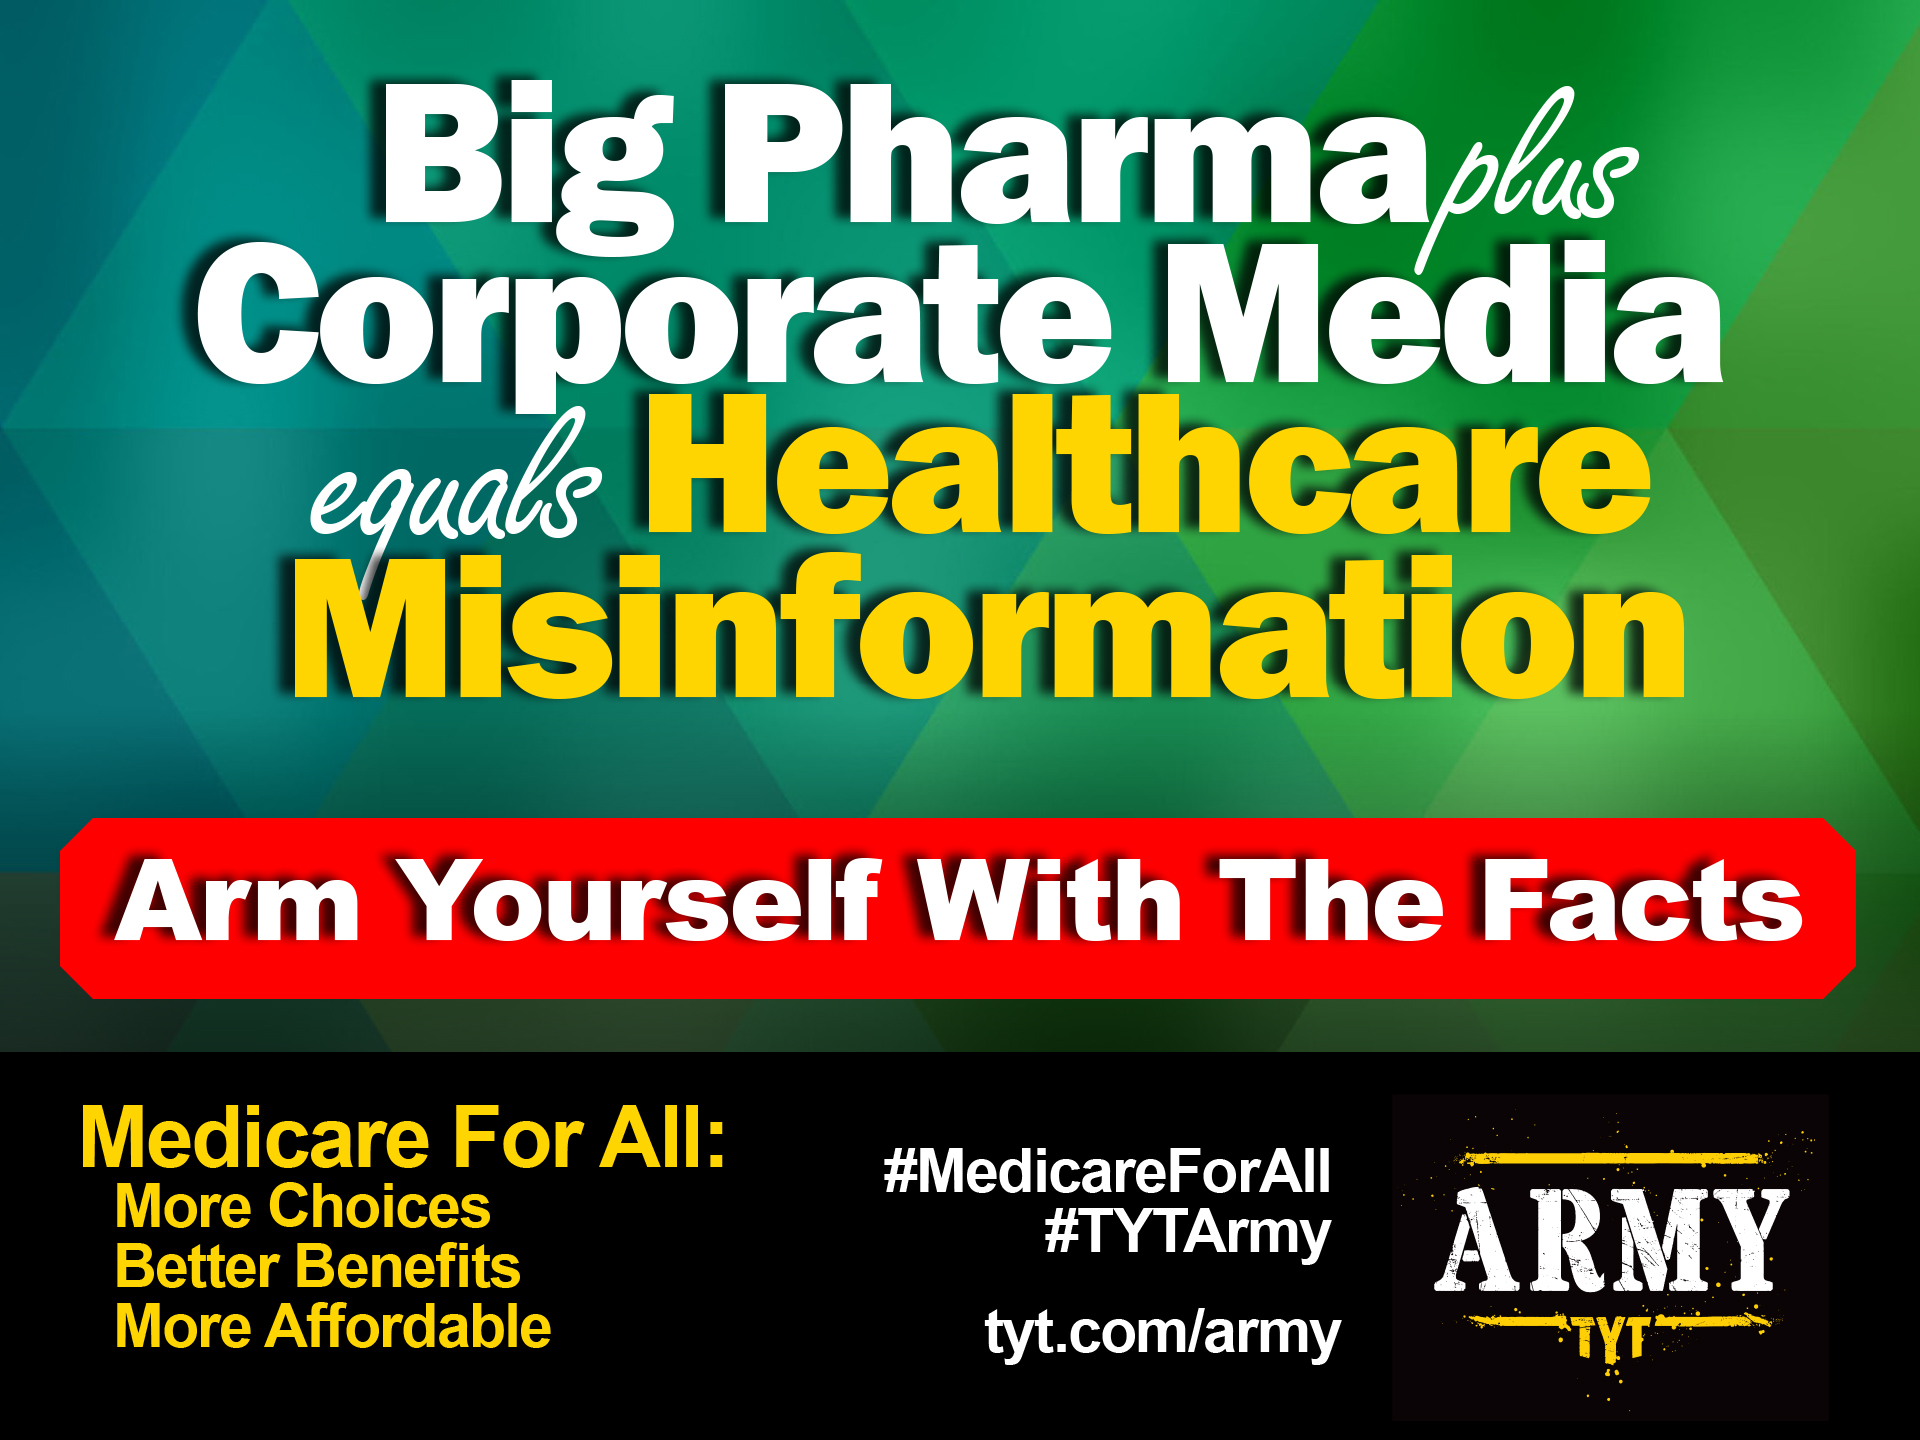 Big Pharma Plus Corporate Media Equals Healthcare Misinformation